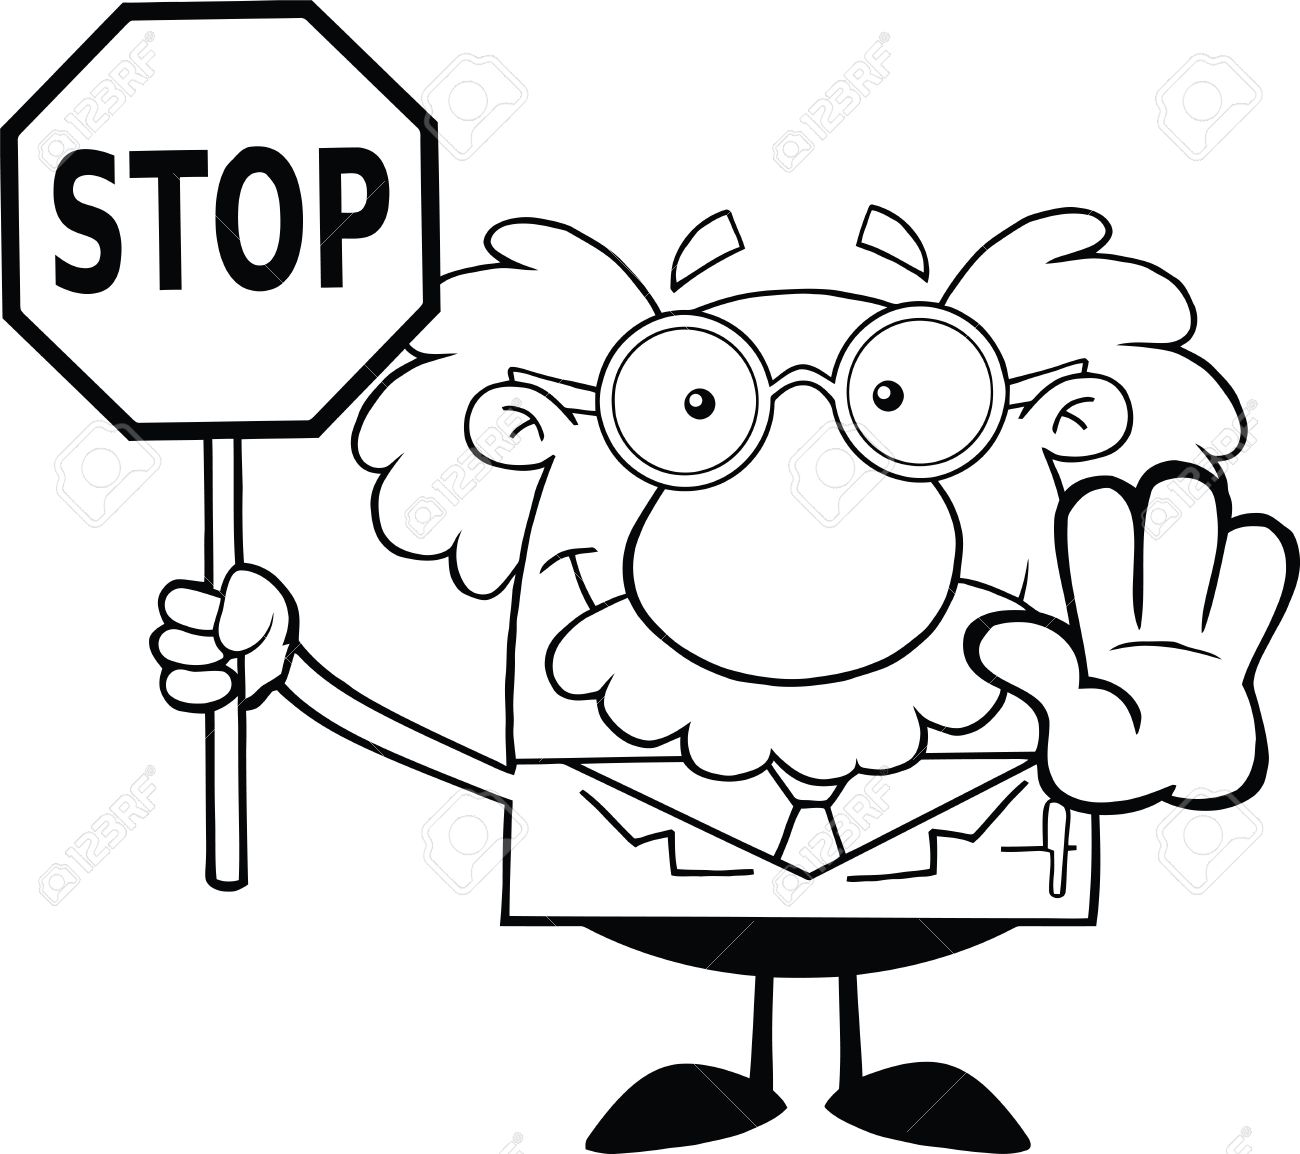 black and white scientist or professor holding a stop sign royalty free cliparts vectors and stock illustration image 21699426 black and white scientist or professor holding a stop sign